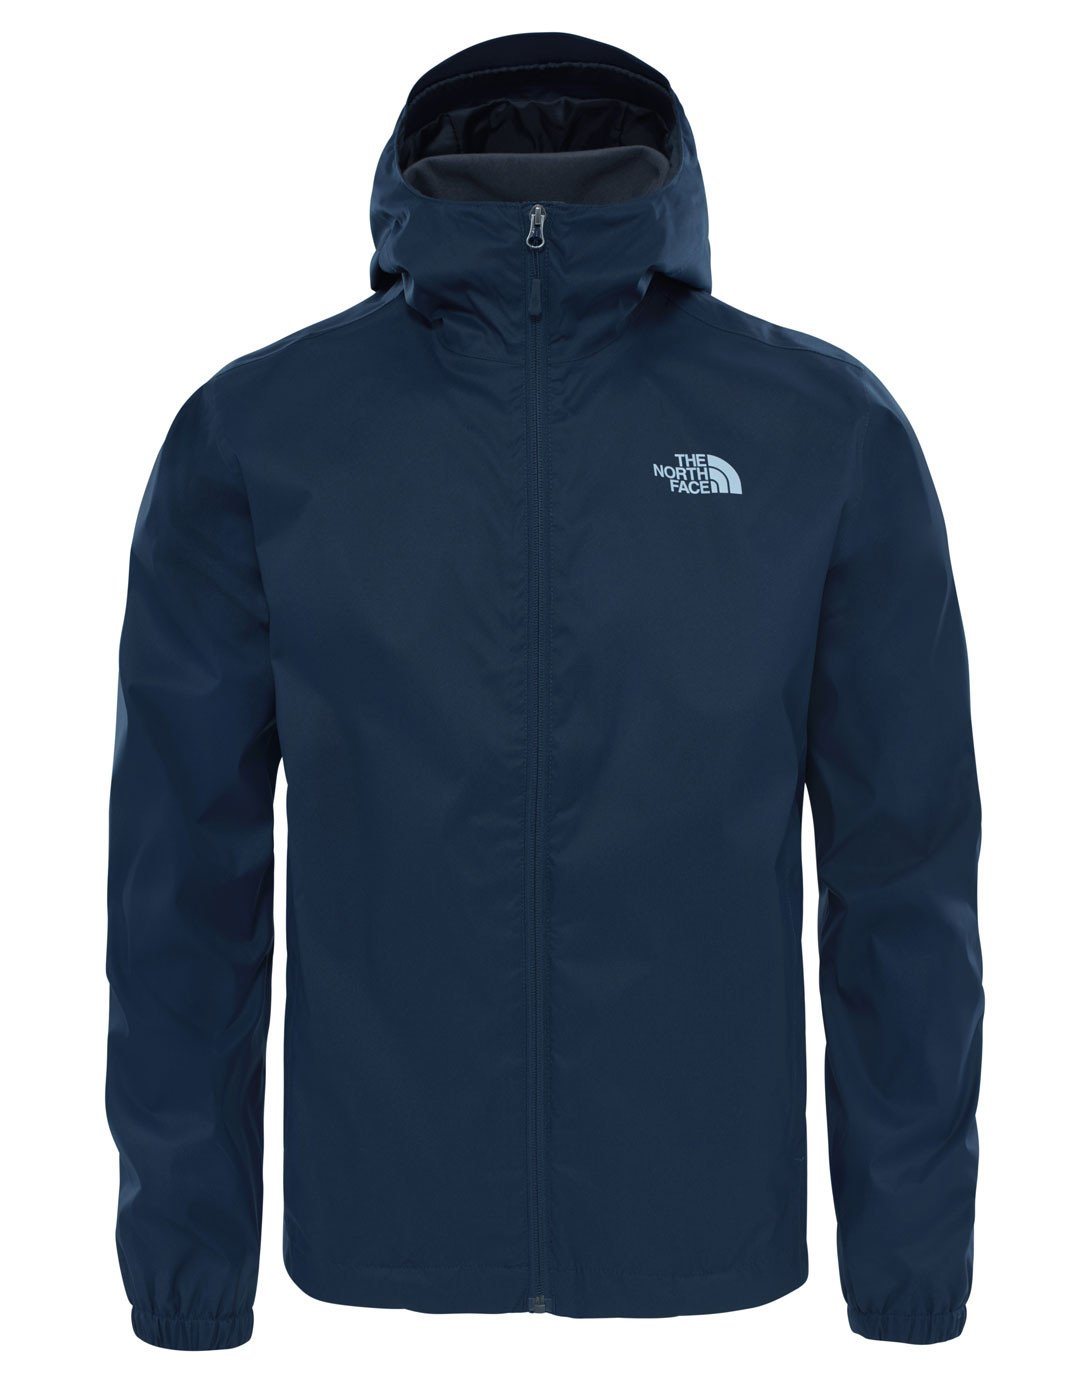 6e27d4ea0 Mens Quest Jacket - Urban Navy